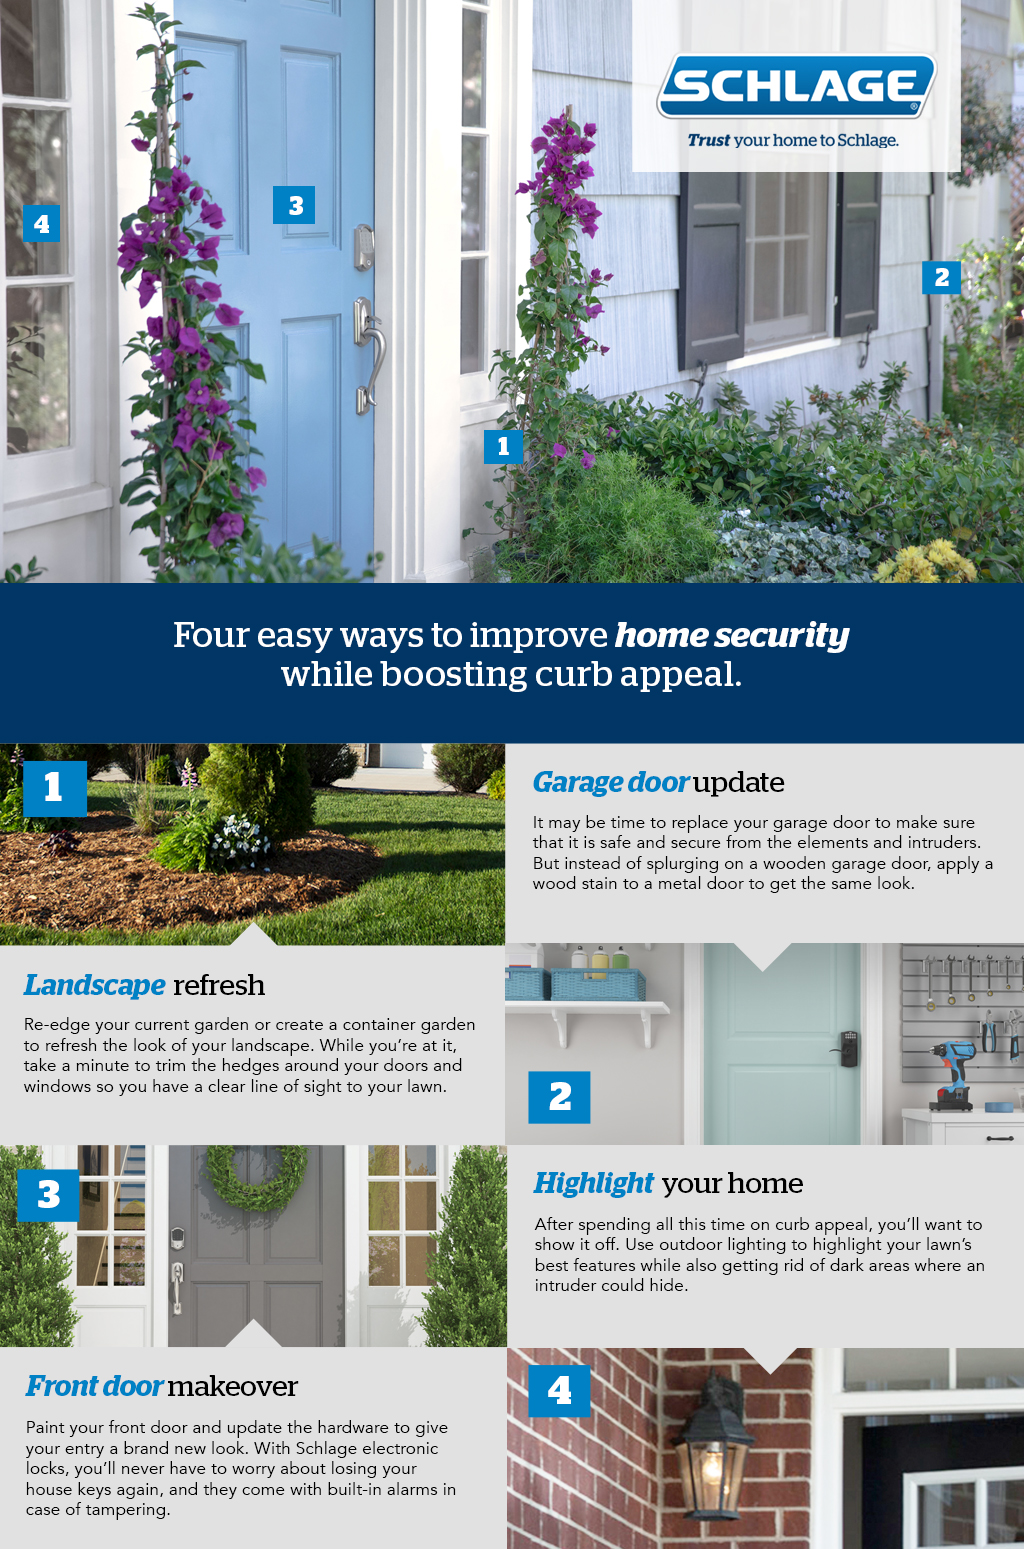 Improve home security while boosting curb appeal